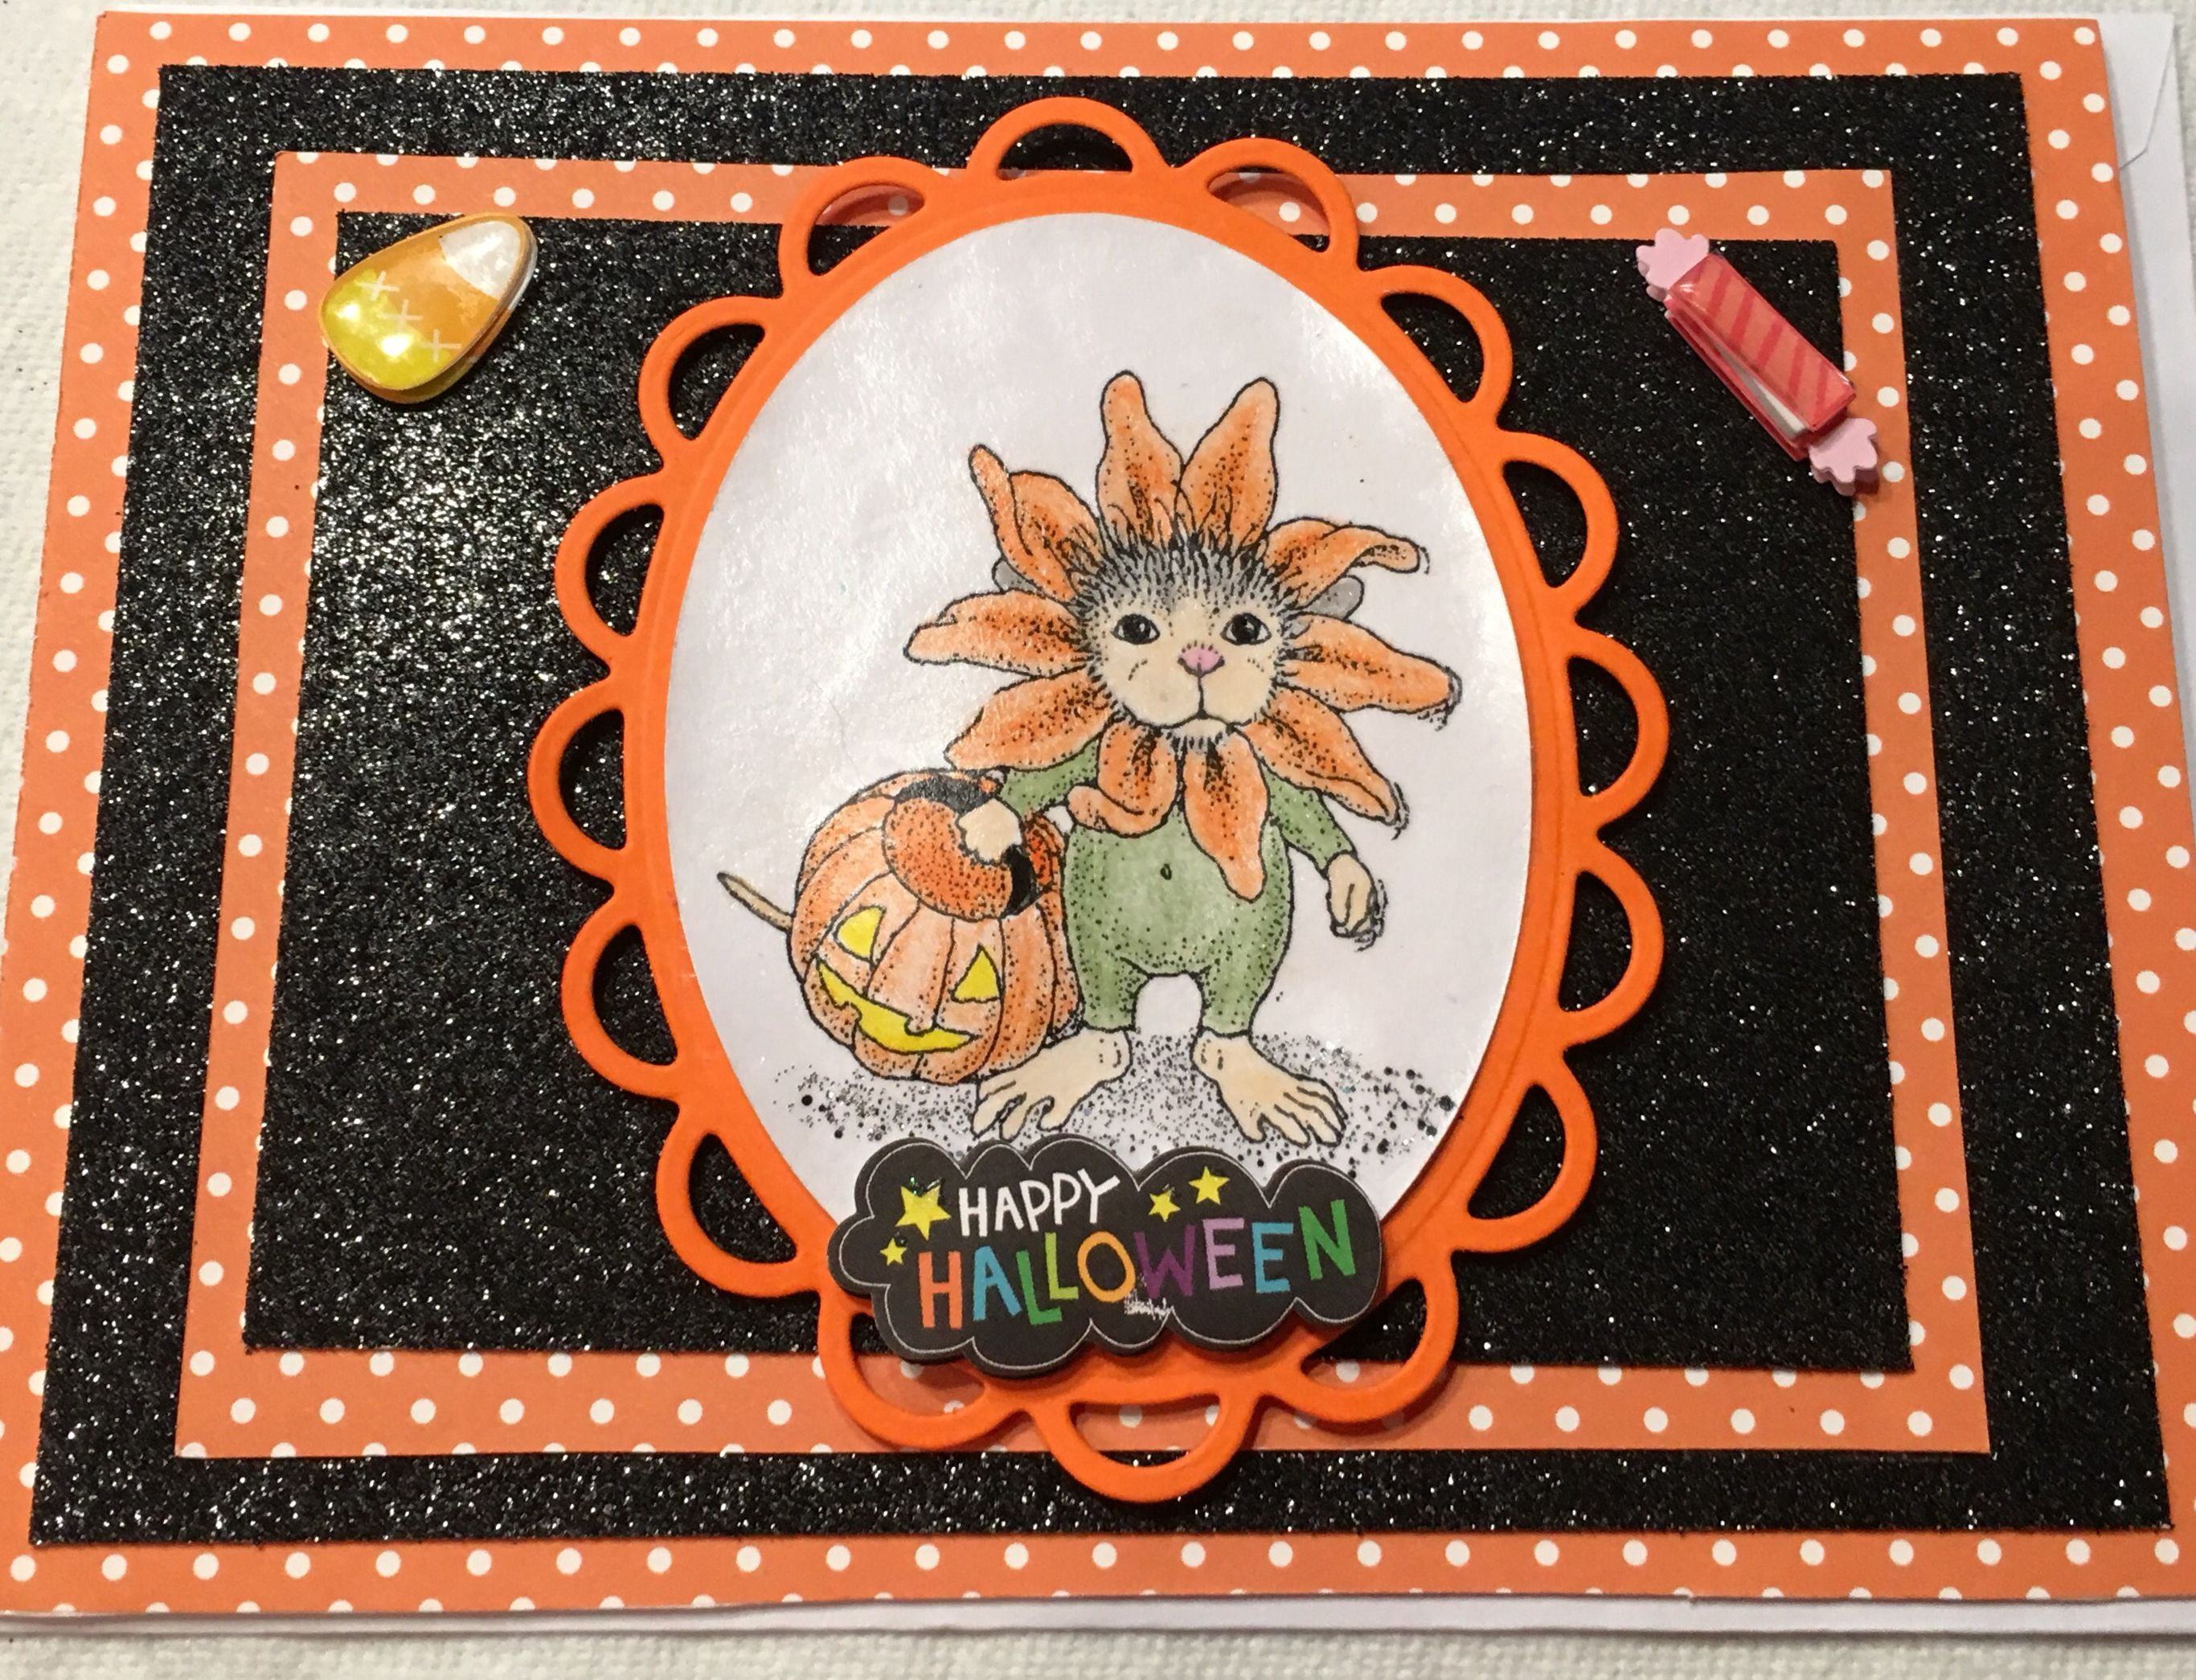 House mouse halloween card handmade greeting cards pinterest house mouse halloween card kristyandbryce Images